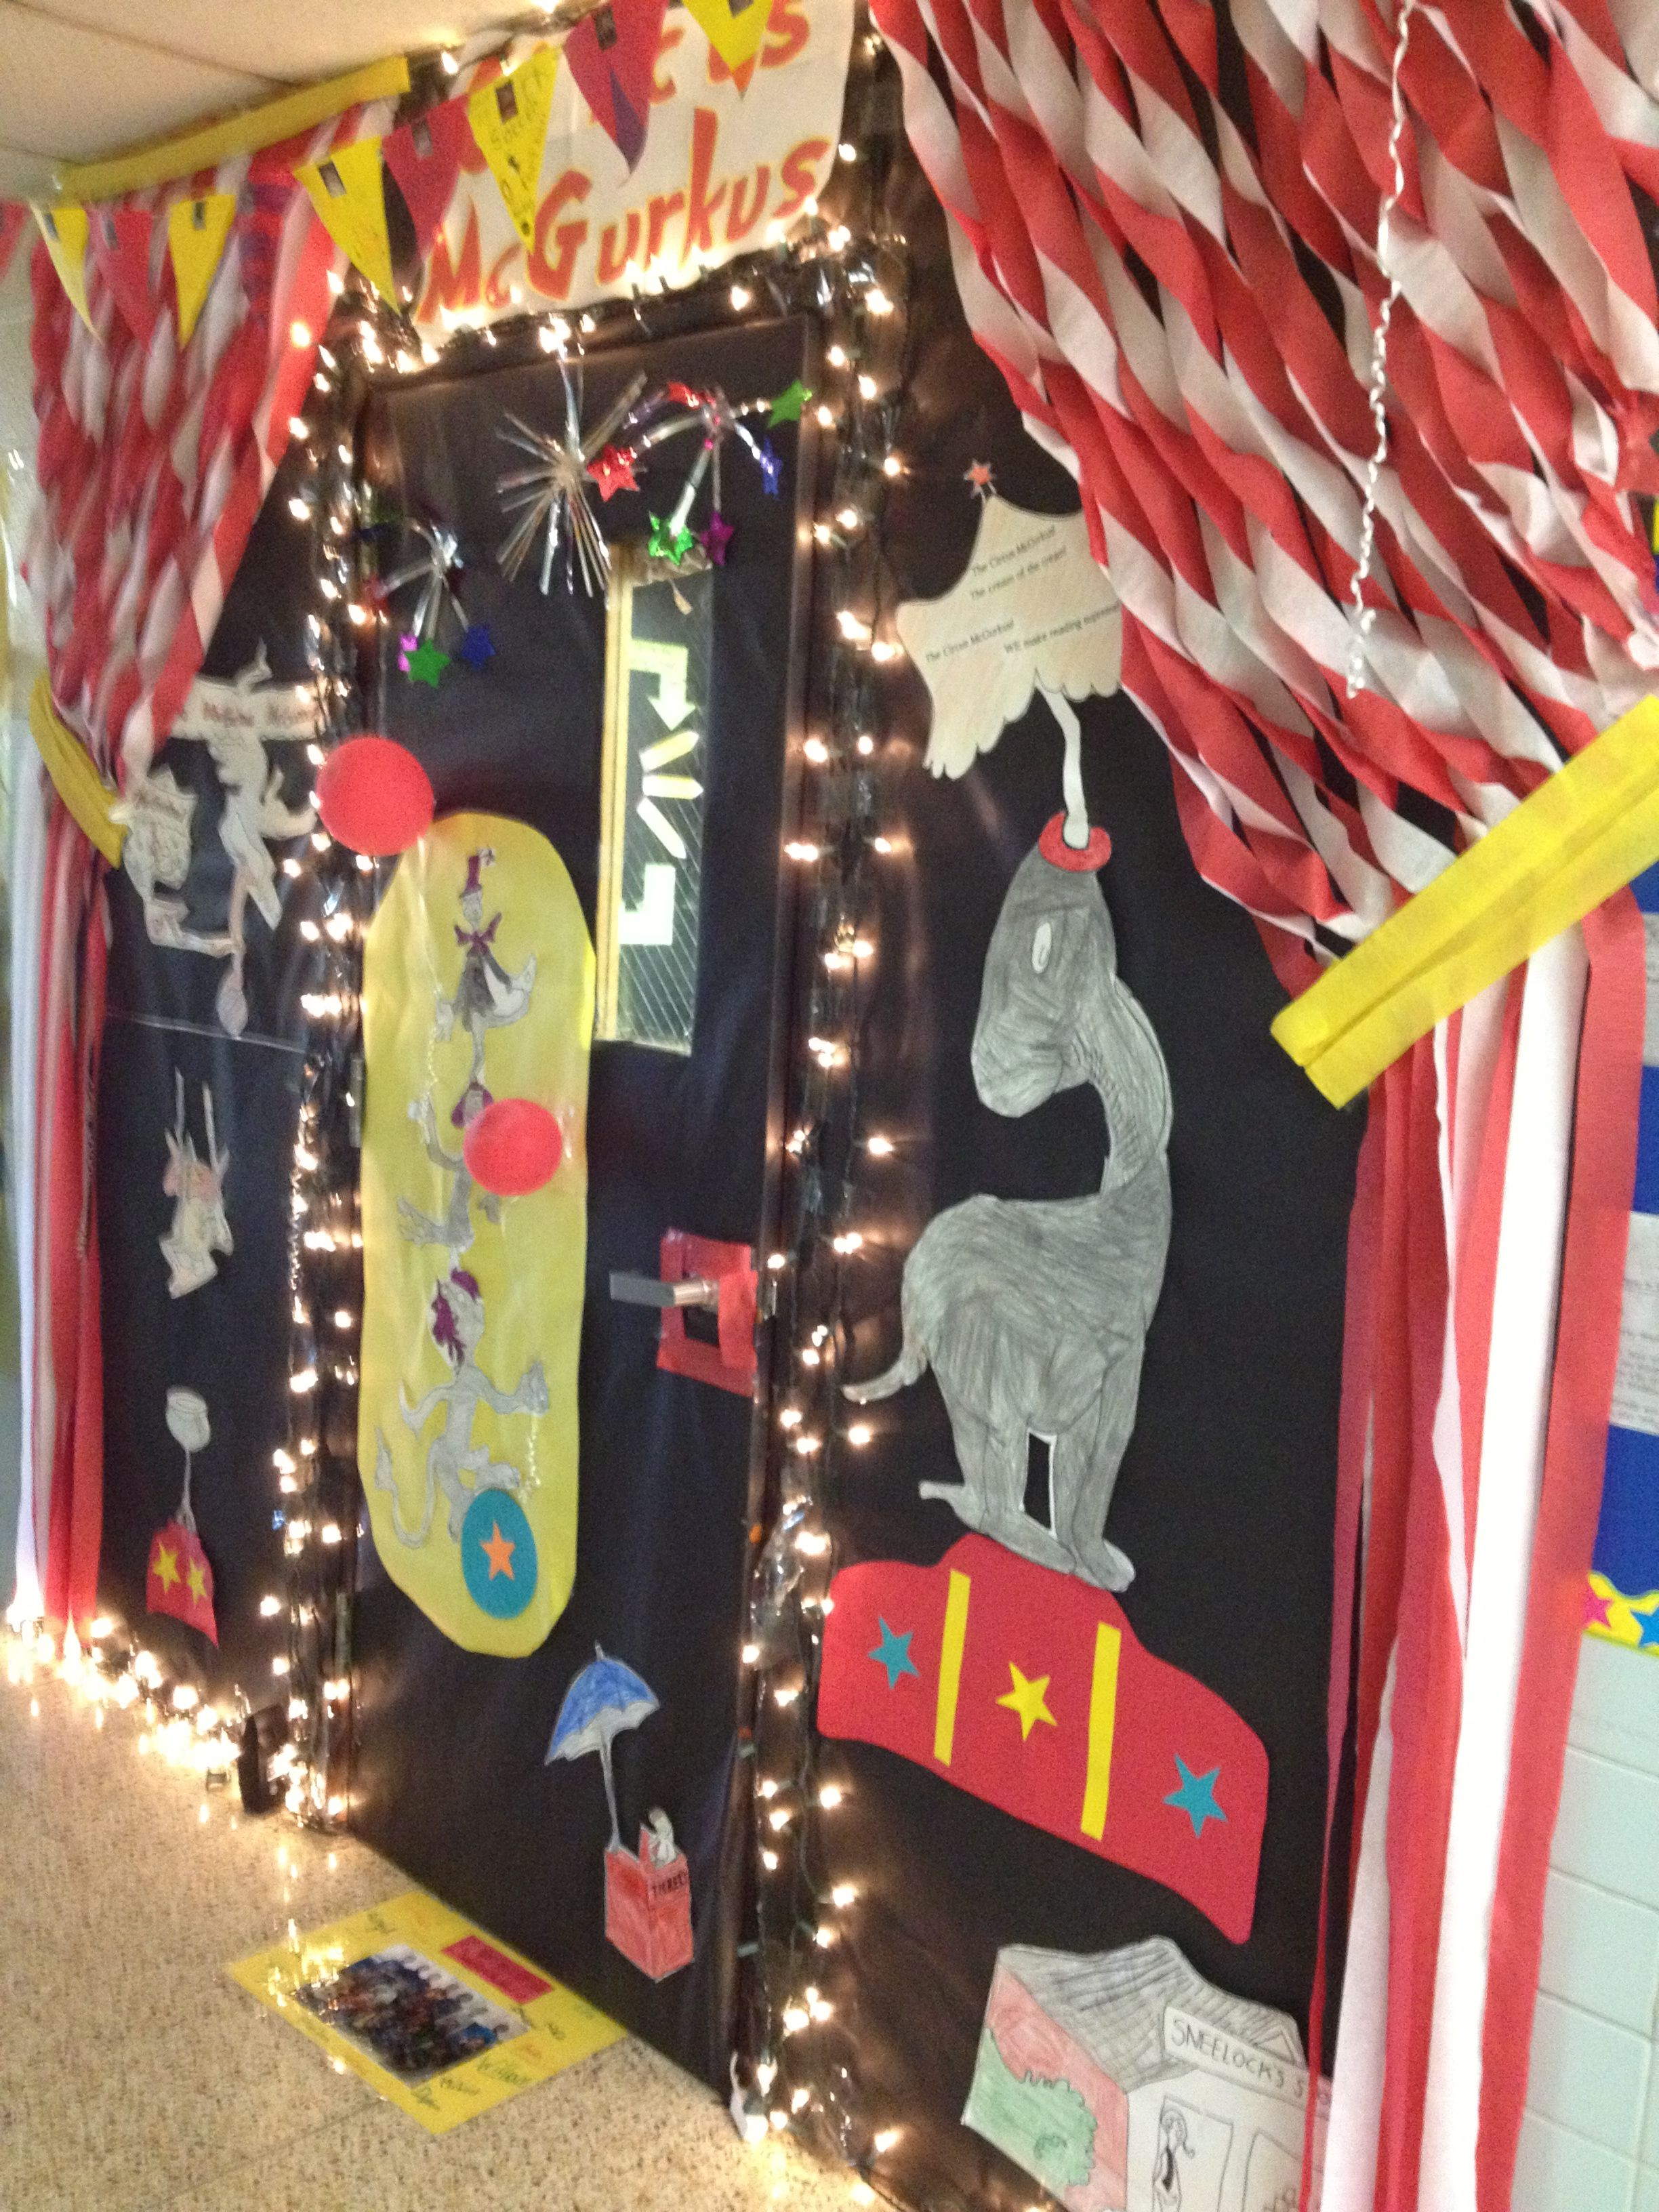 Captivating If I Ran The Zoo Circus McGurkus! Decorate The Door Competition!